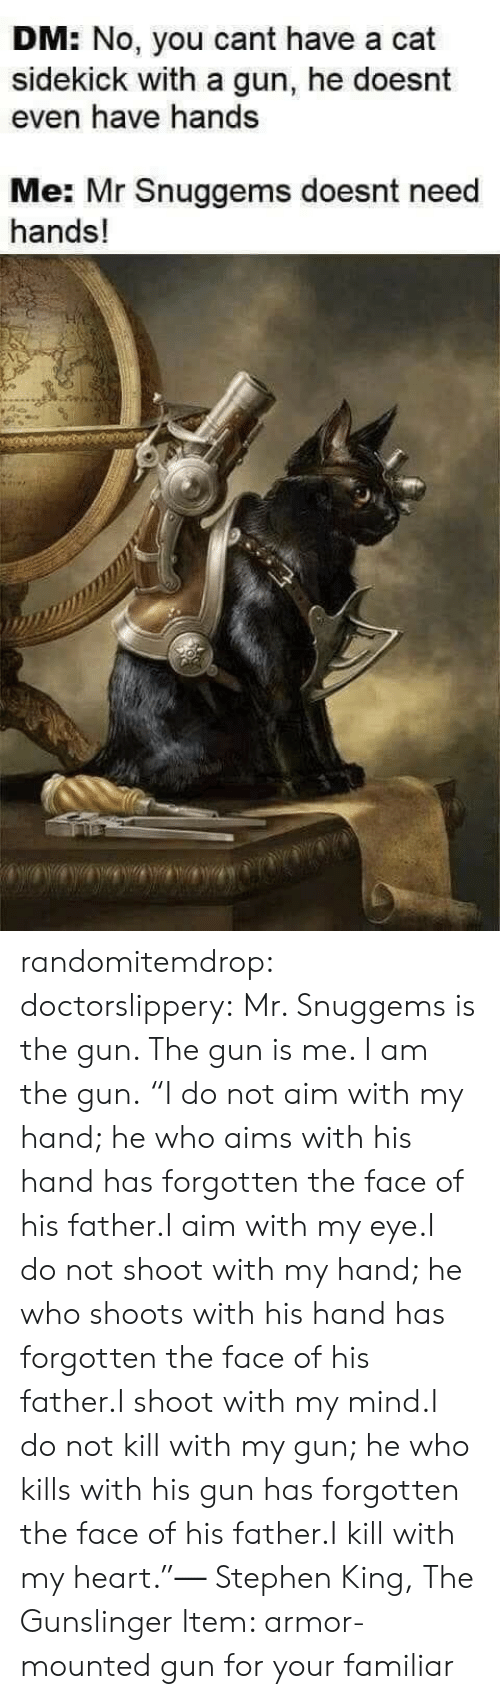 """sidekick: DM: No, you cant have a cat  sidekick with a gun, he doesnt  even have hands  Me: Mr Snuggems doesnt need  hands! randomitemdrop: doctorslippery:  Mr. Snuggems is the gun. The gun is me. I am the gun.   """"I do not aim with my hand; he who aims with his hand has forgotten the face of his father.I aim with my eye.I do not shoot with my hand; he who shoots with his hand has forgotten the face of his father.I shoot with my mind.I do not kill with my gun; he who kills with his gun has forgotten the face of his father.I kill with my heart.""""― Stephen King, The Gunslinger    Item: armor-mounted gun for your familiar"""